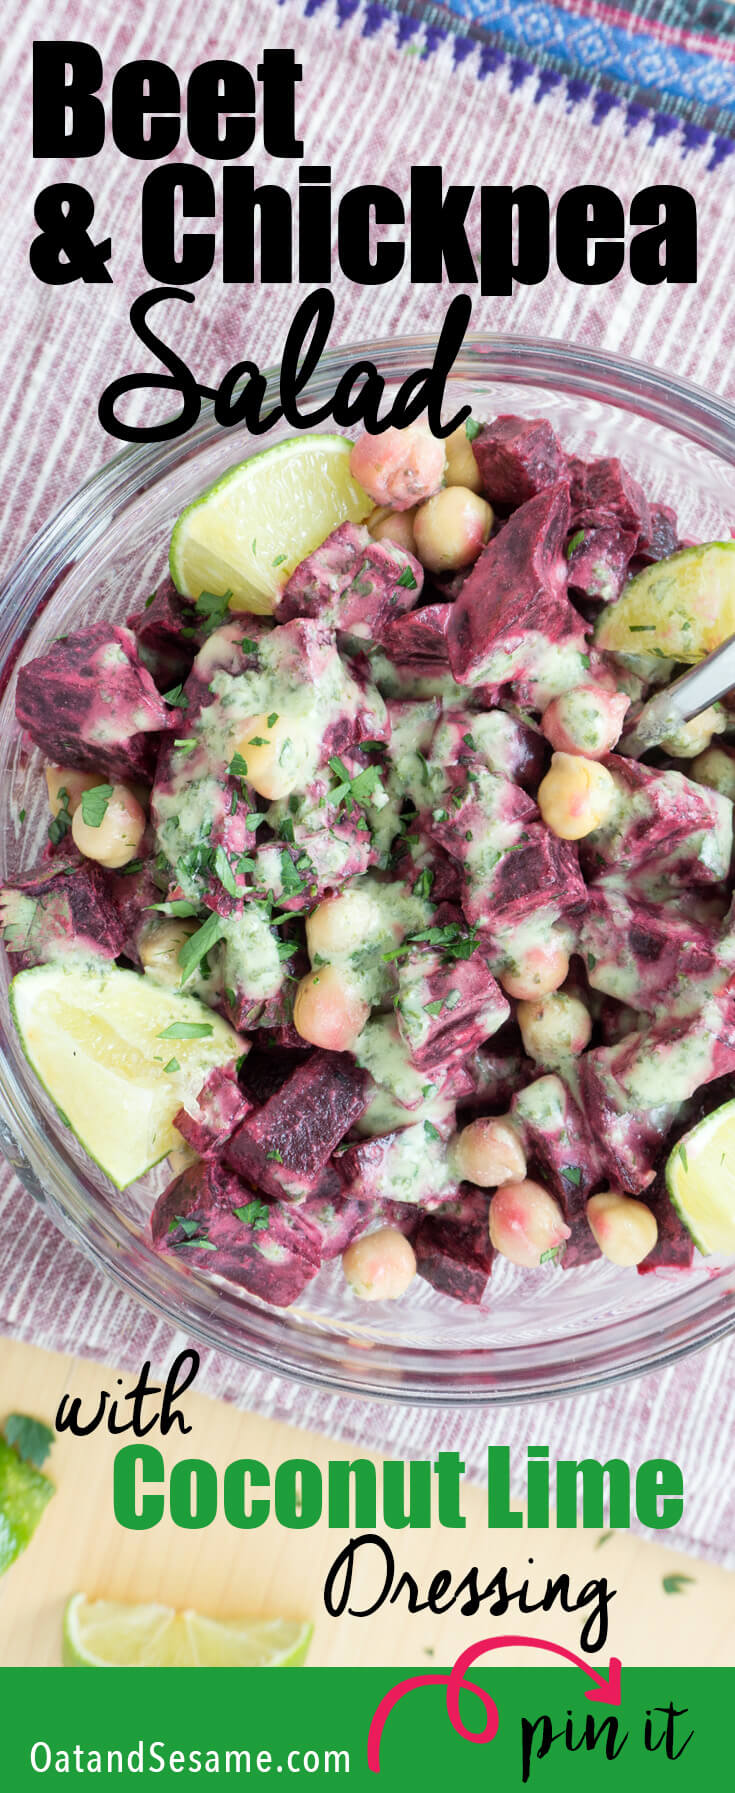 This Beet & Chickpea Salad with Coconut Lime Dressing is packed with tropical flair. Healthy and Easy to Make Ahead! The dressing packs a tangy citrusy punch with lots of yummy cilantro! It's a great dressing for anything you want to give a tropical boost! | BEETS | BEANS | CHICKPEAS | SALAD | VEGETARIAN | VEGAN | HEALTHY | Recipe at OatandSesame.com